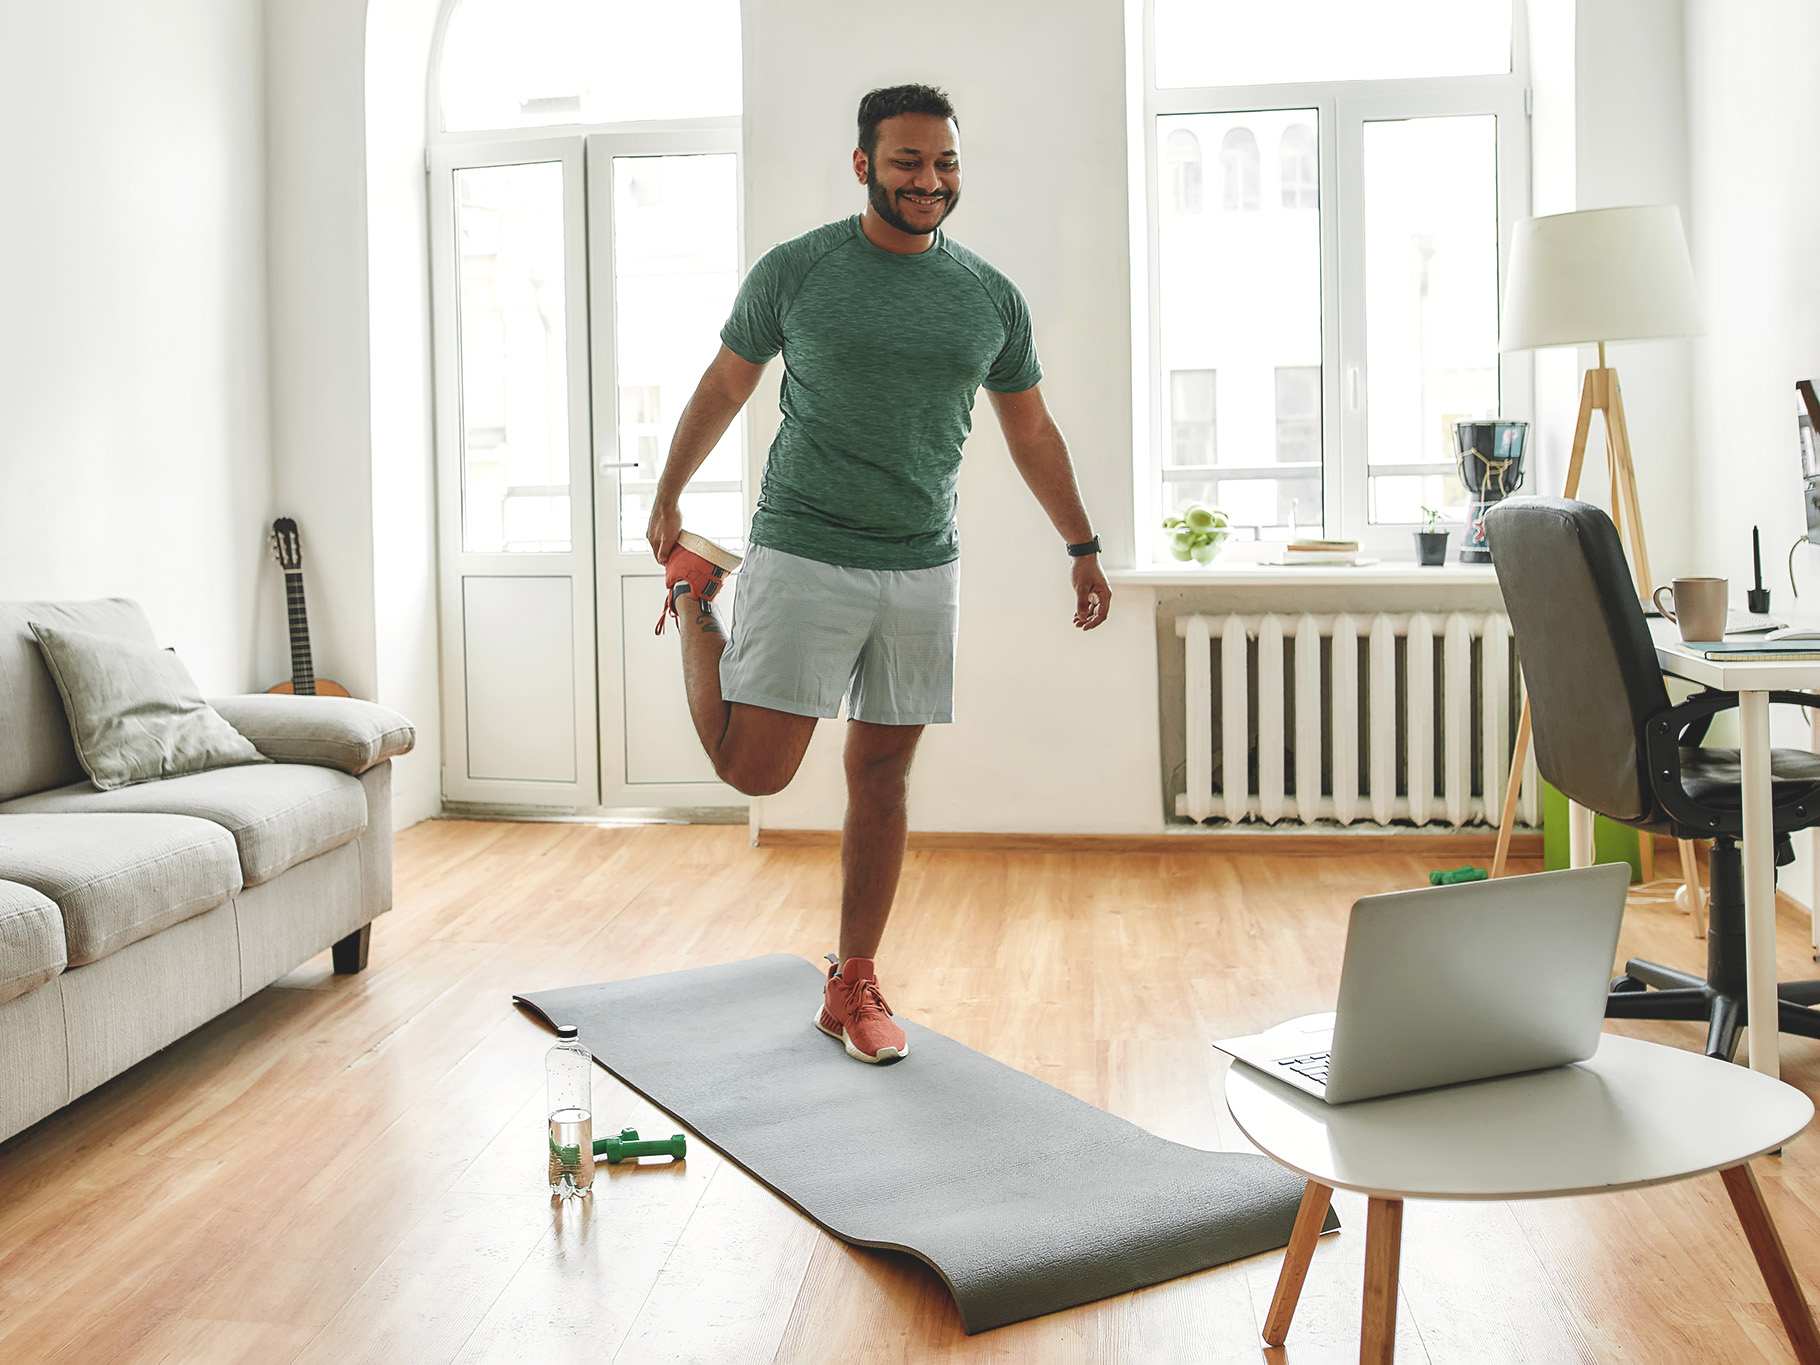 A happy guy doing online workout